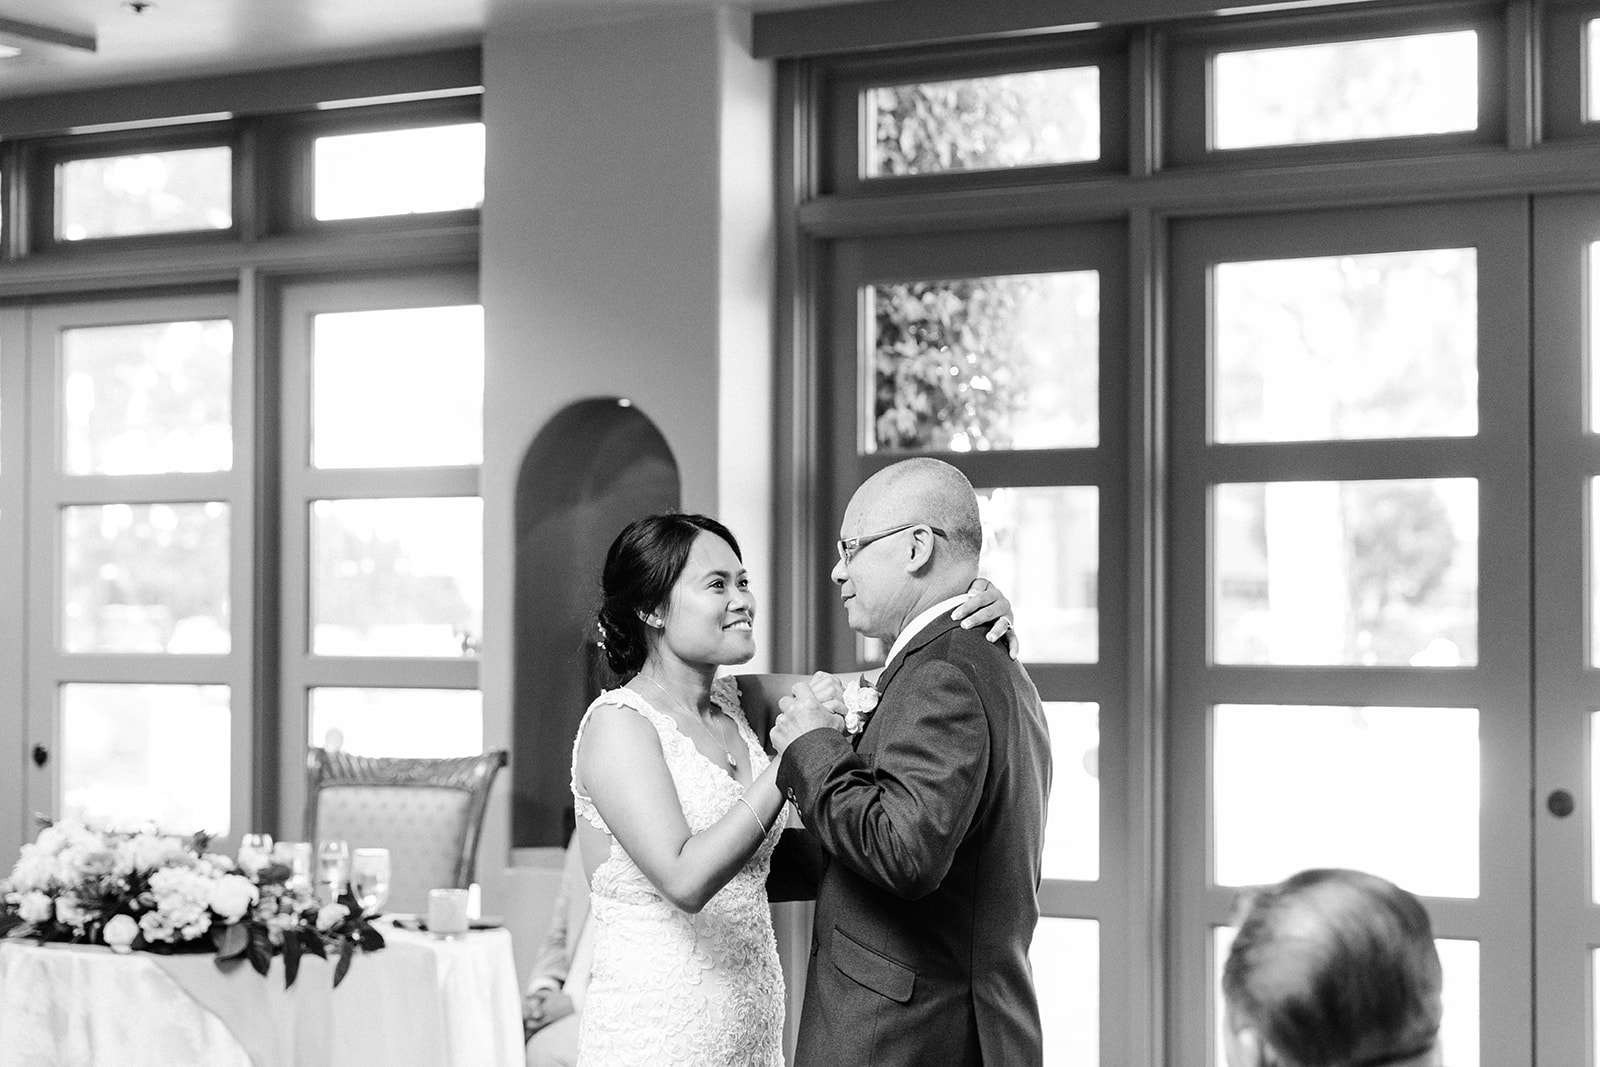 The father-daughter dance during a wedding in Costa Mesa.